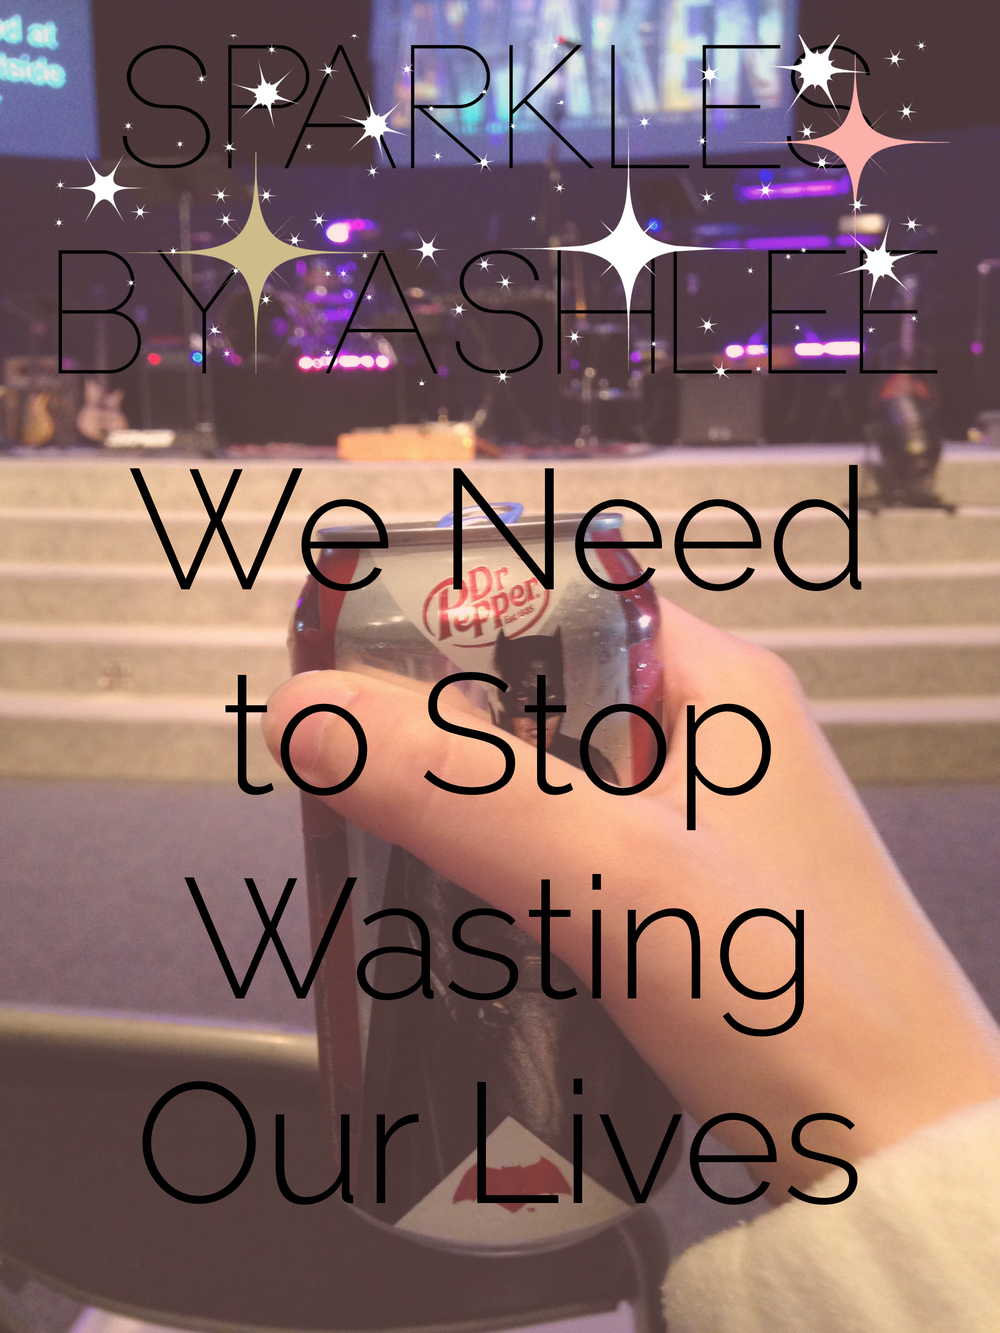 We-Need-to-Stop-Wasting-Our-Lives-Sparkles-by-Ashlee.jpg